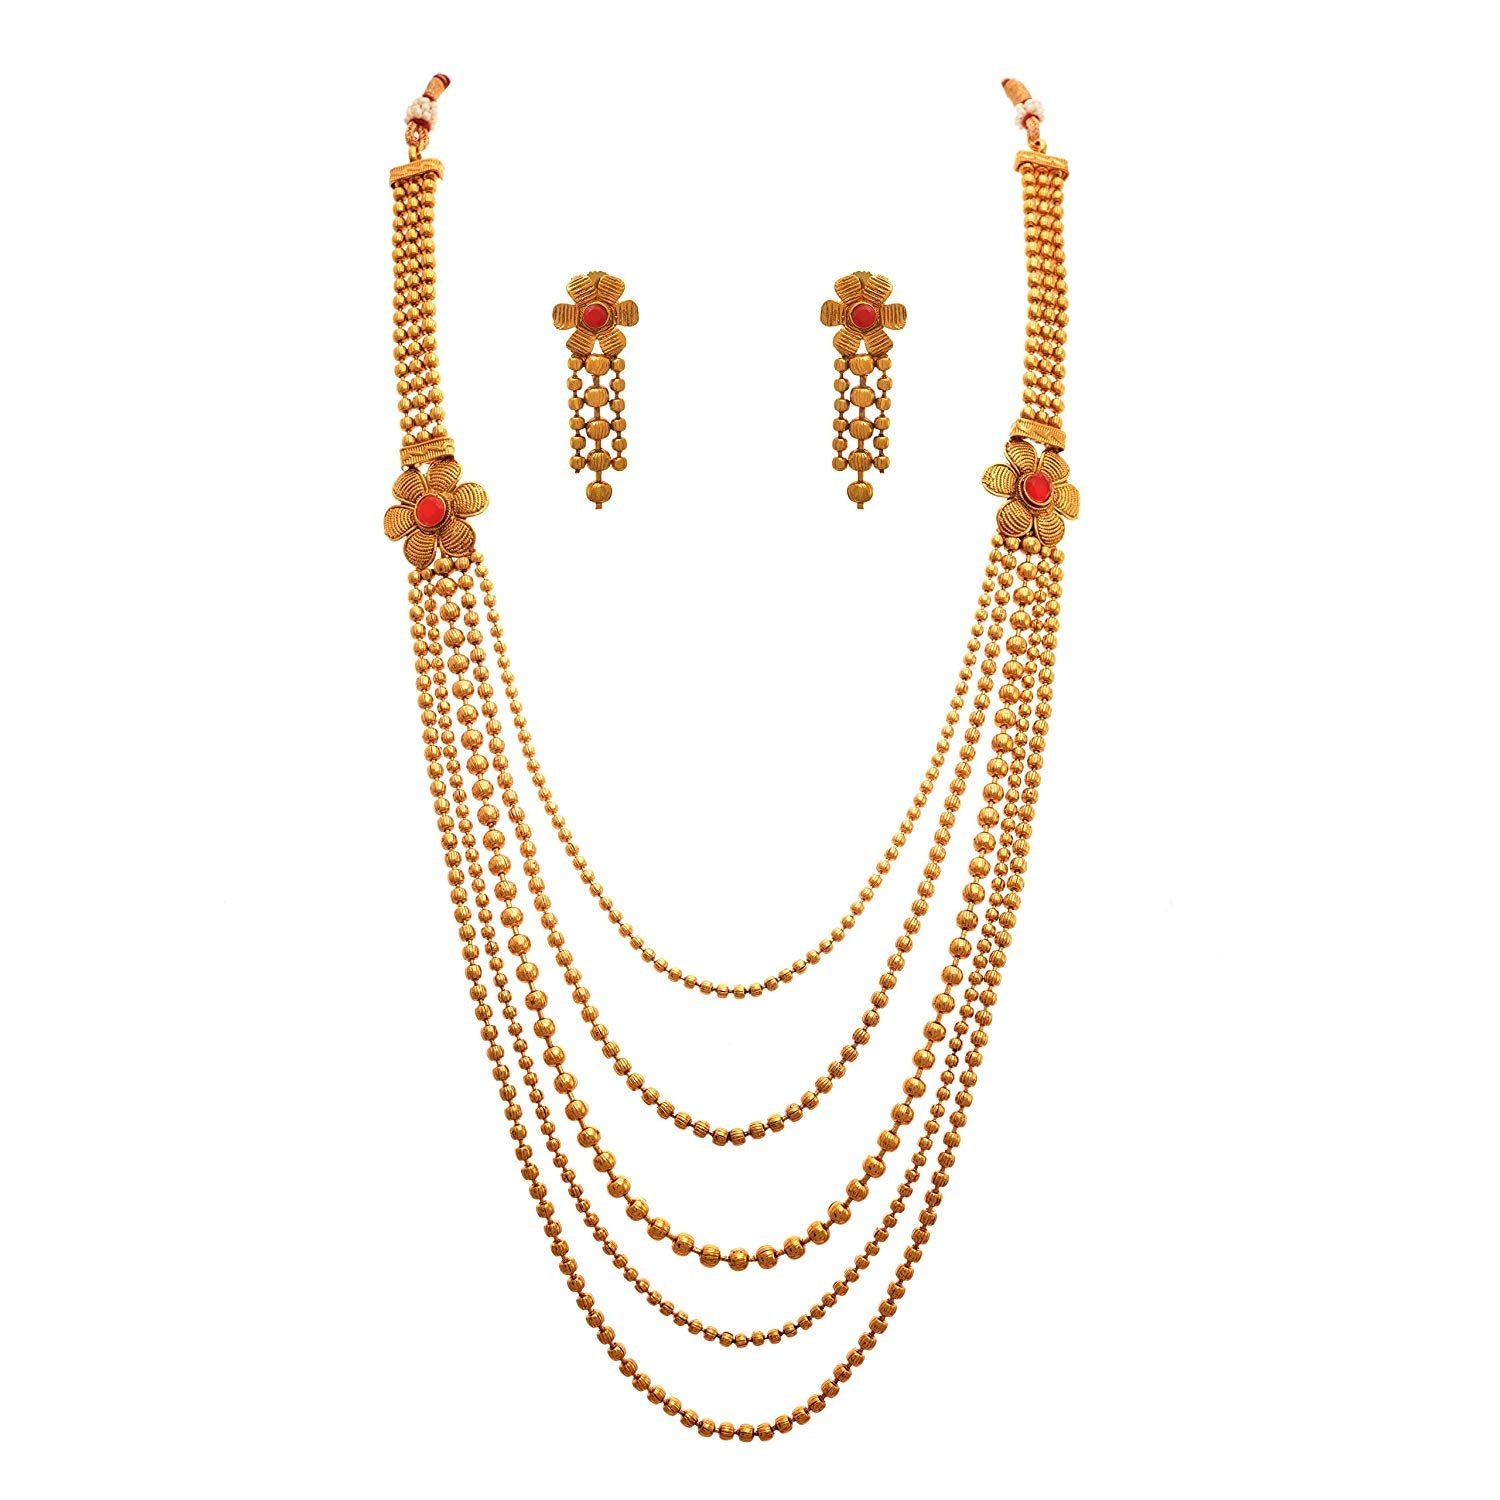 JFL - Traditional and Ethnic One Gram Gold Plated Multi Strand  Stones Designer Long Necklace Set with Earring for Women & Girls.